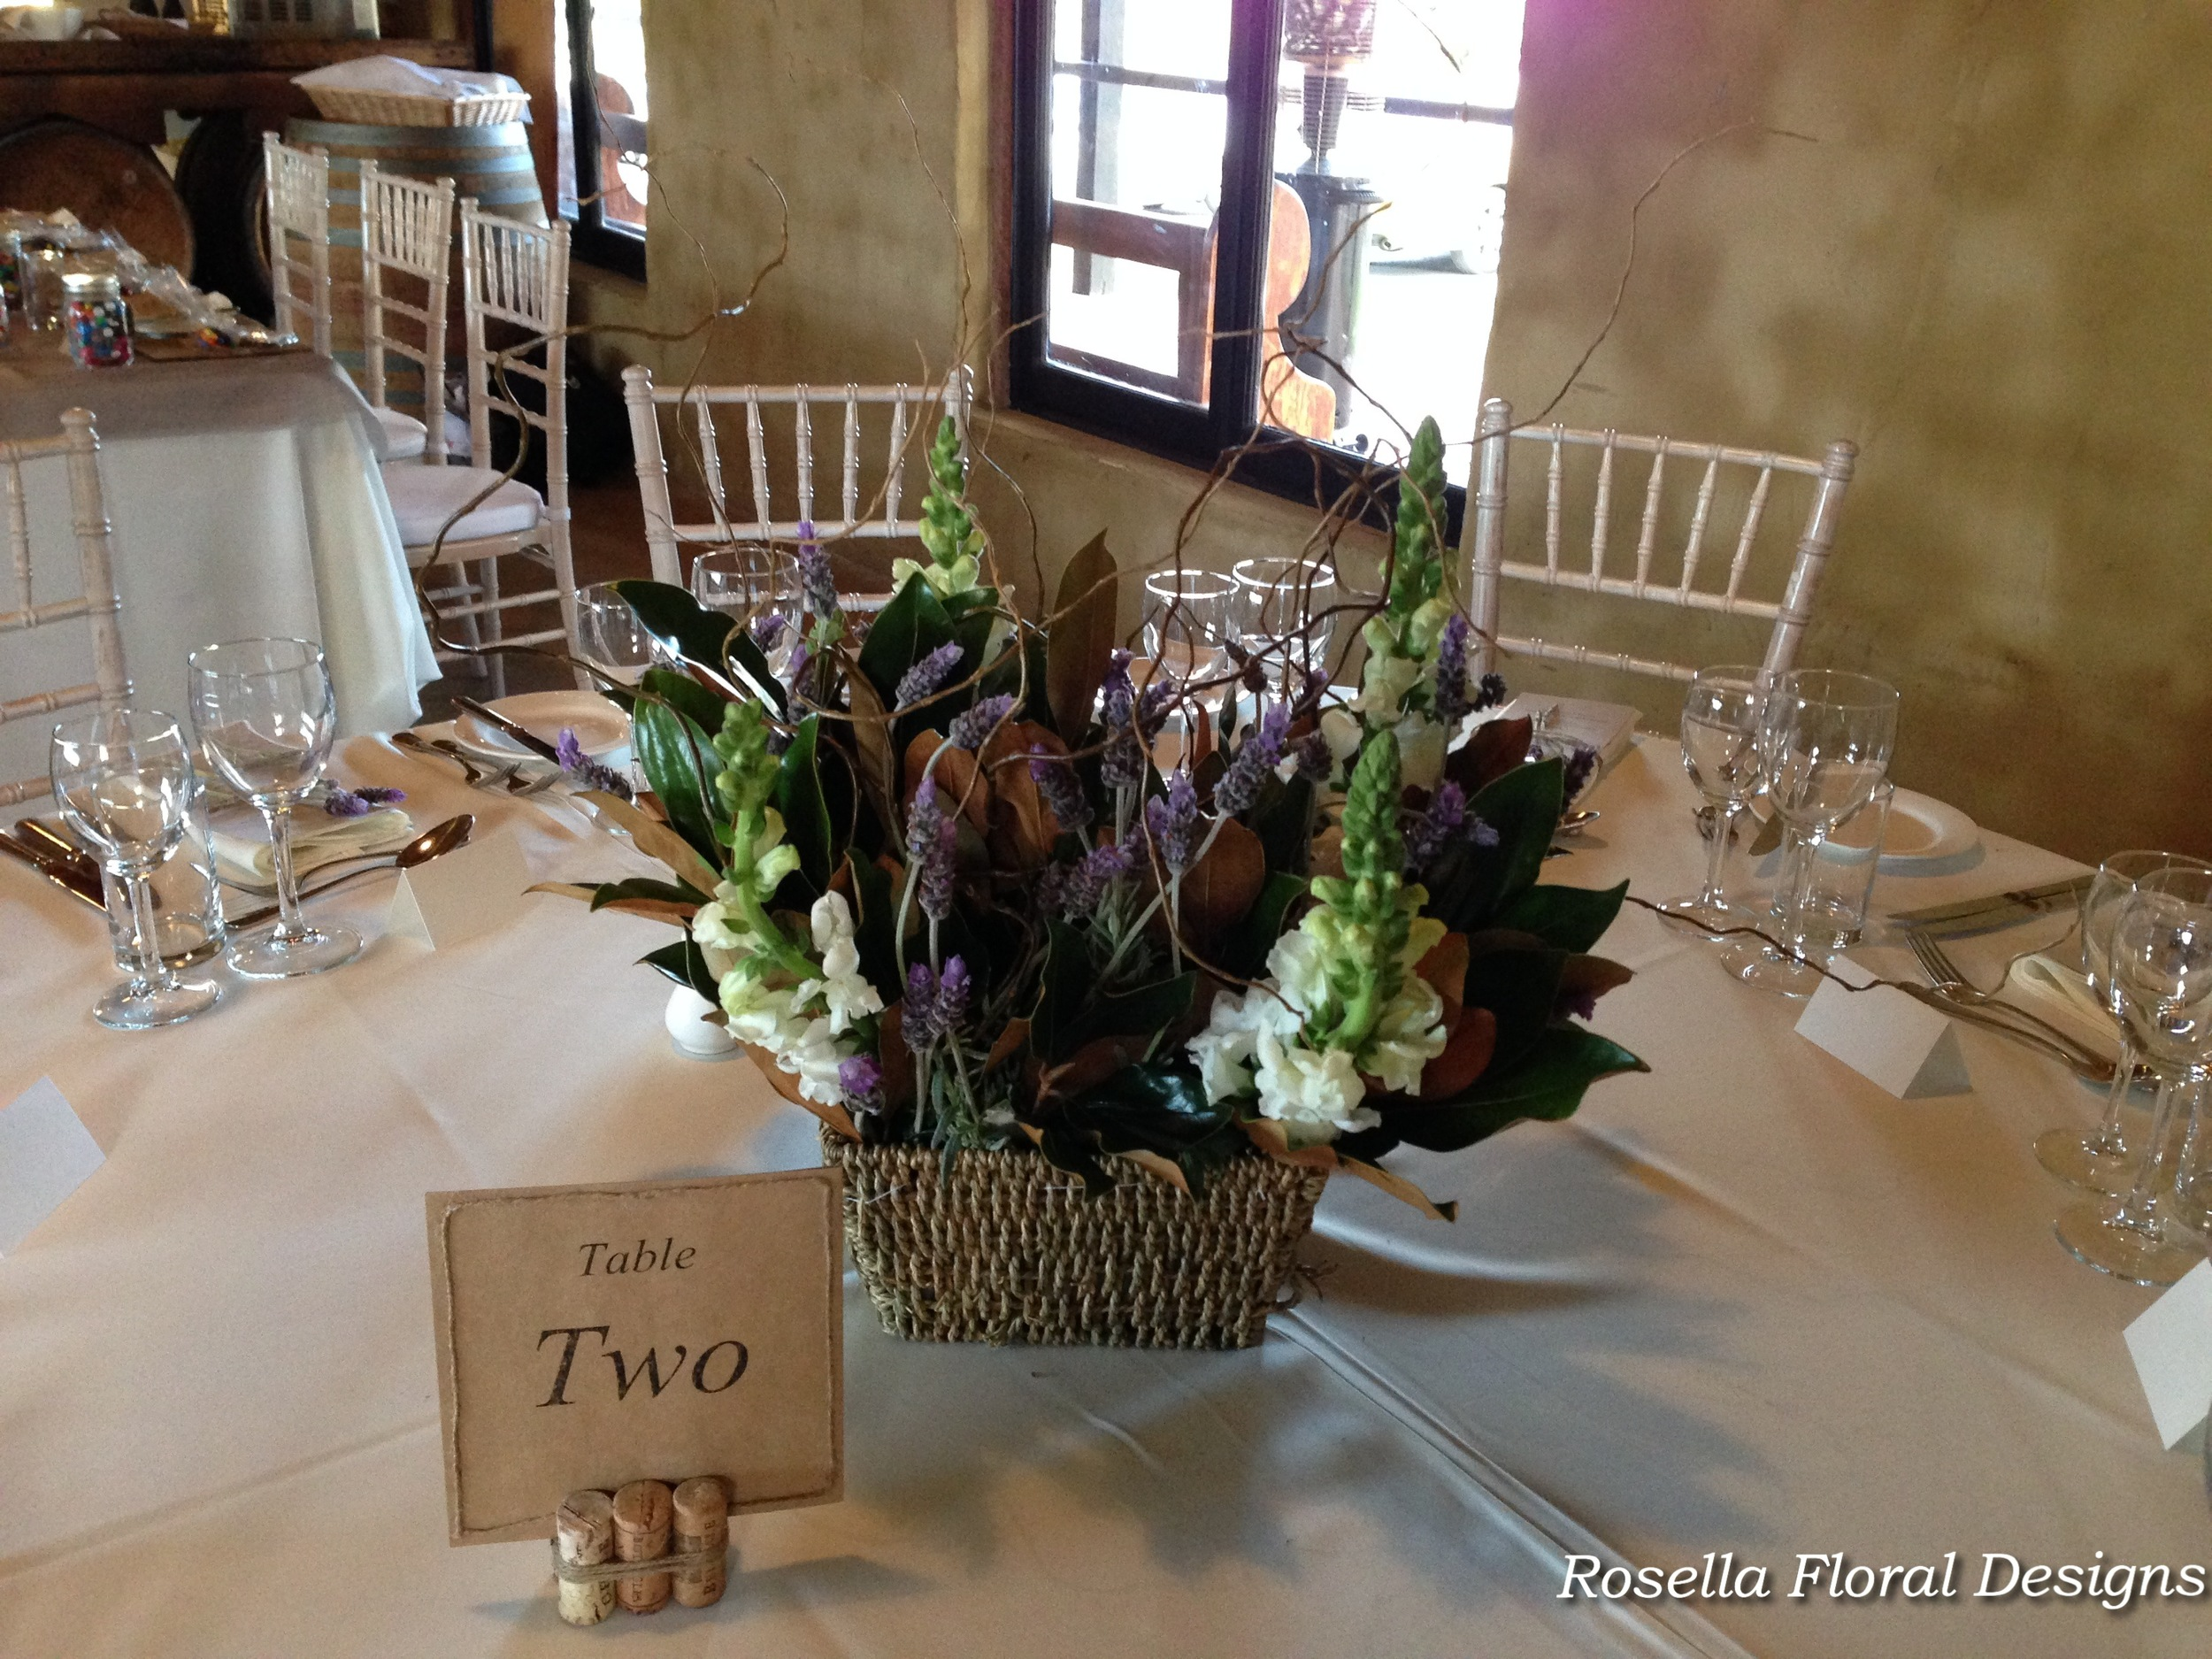 Rustic country style wedding table centerpiece.jpg